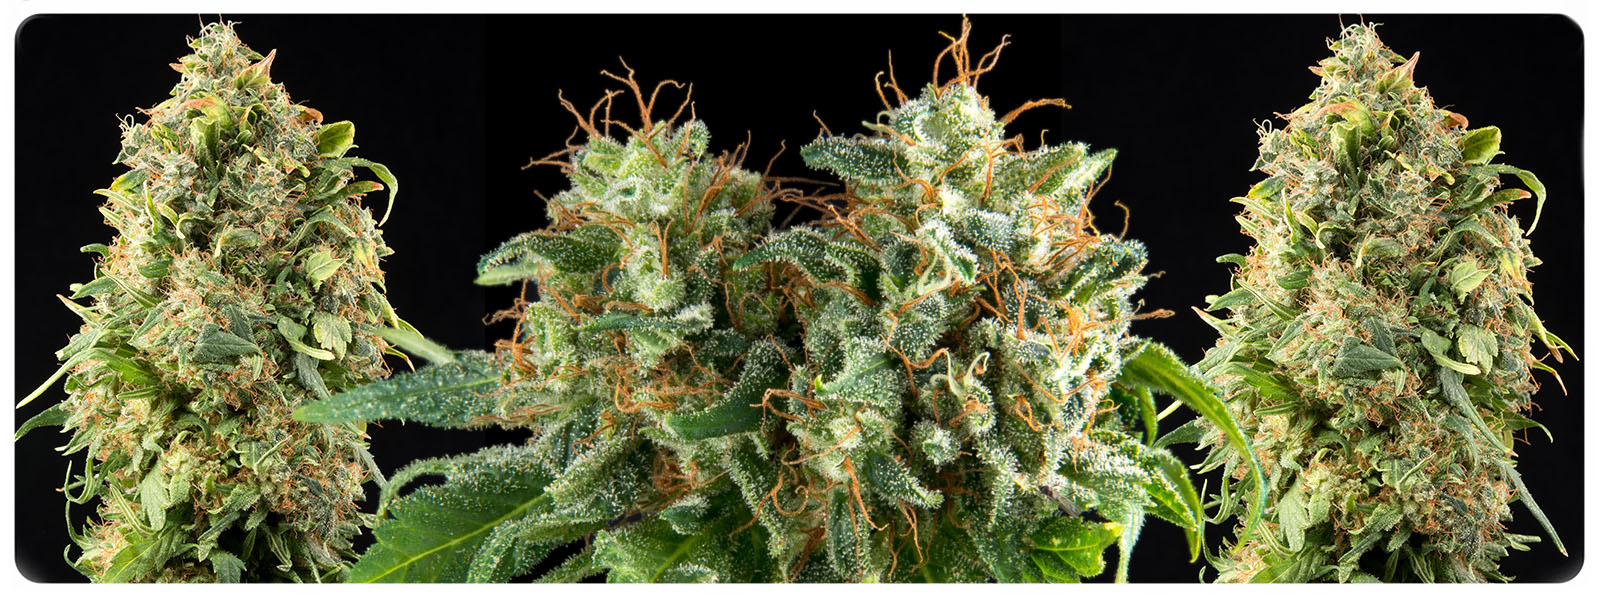 Kolossus feminized cannabis seeds for the high yield and spicy tasting buds